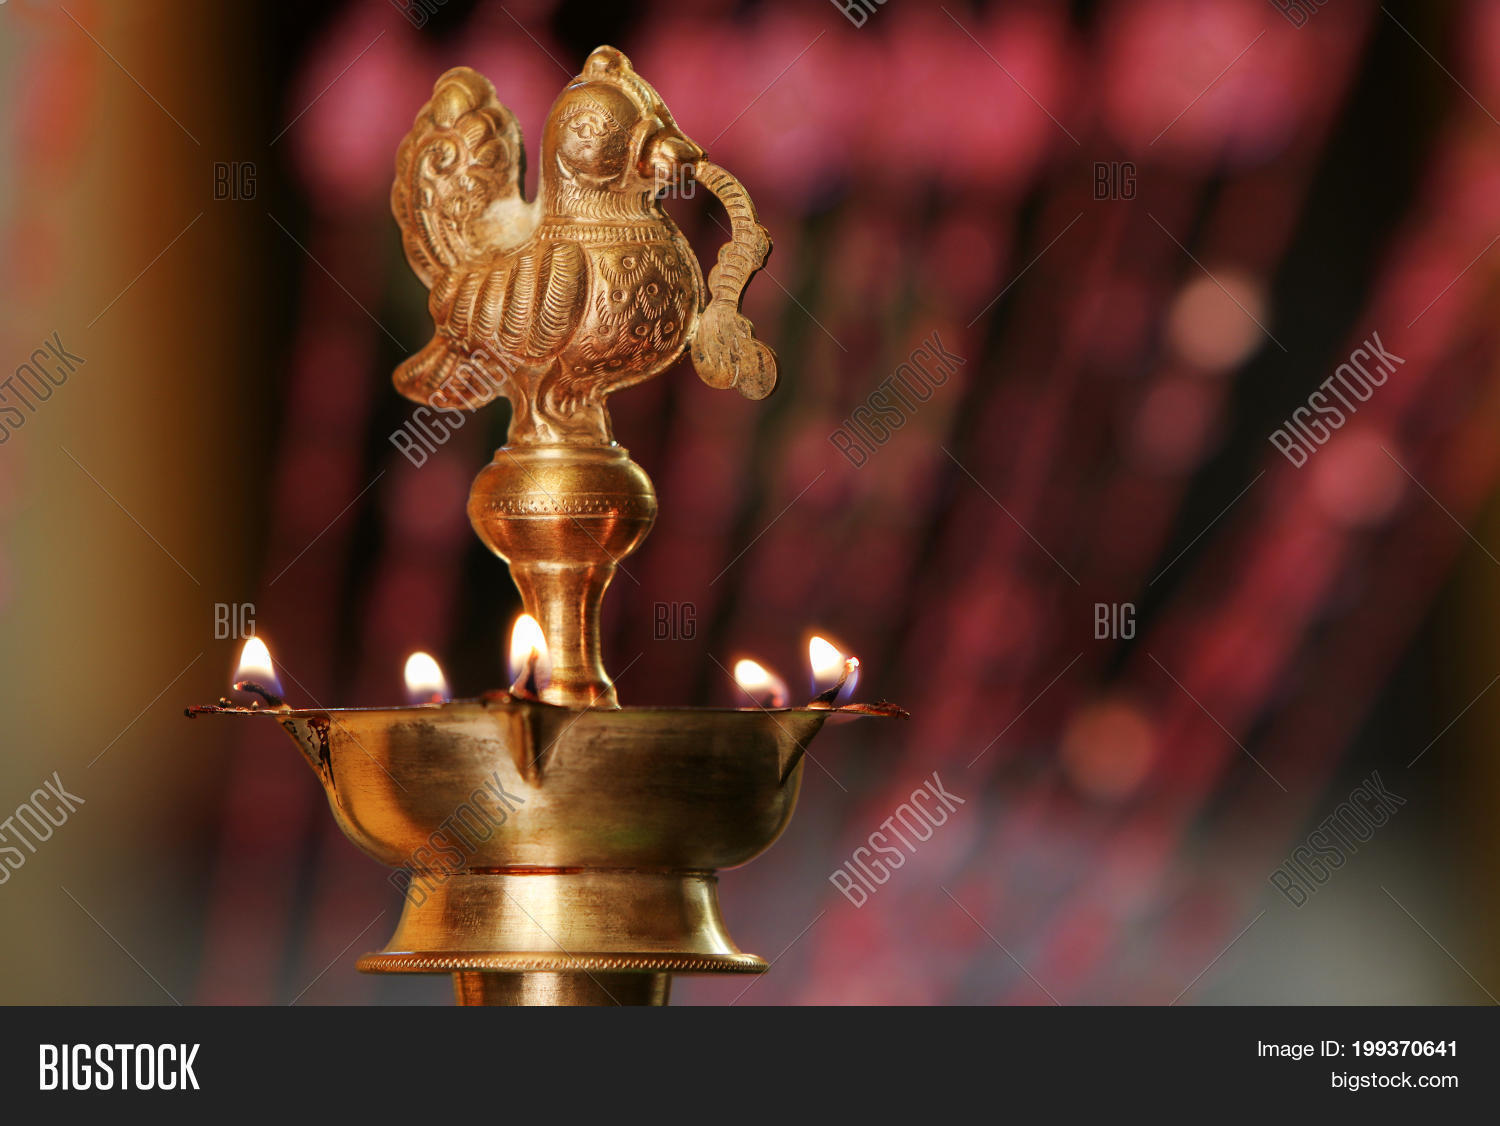 Indian Traditional Image & Photo (Free Trial) | Bigstock